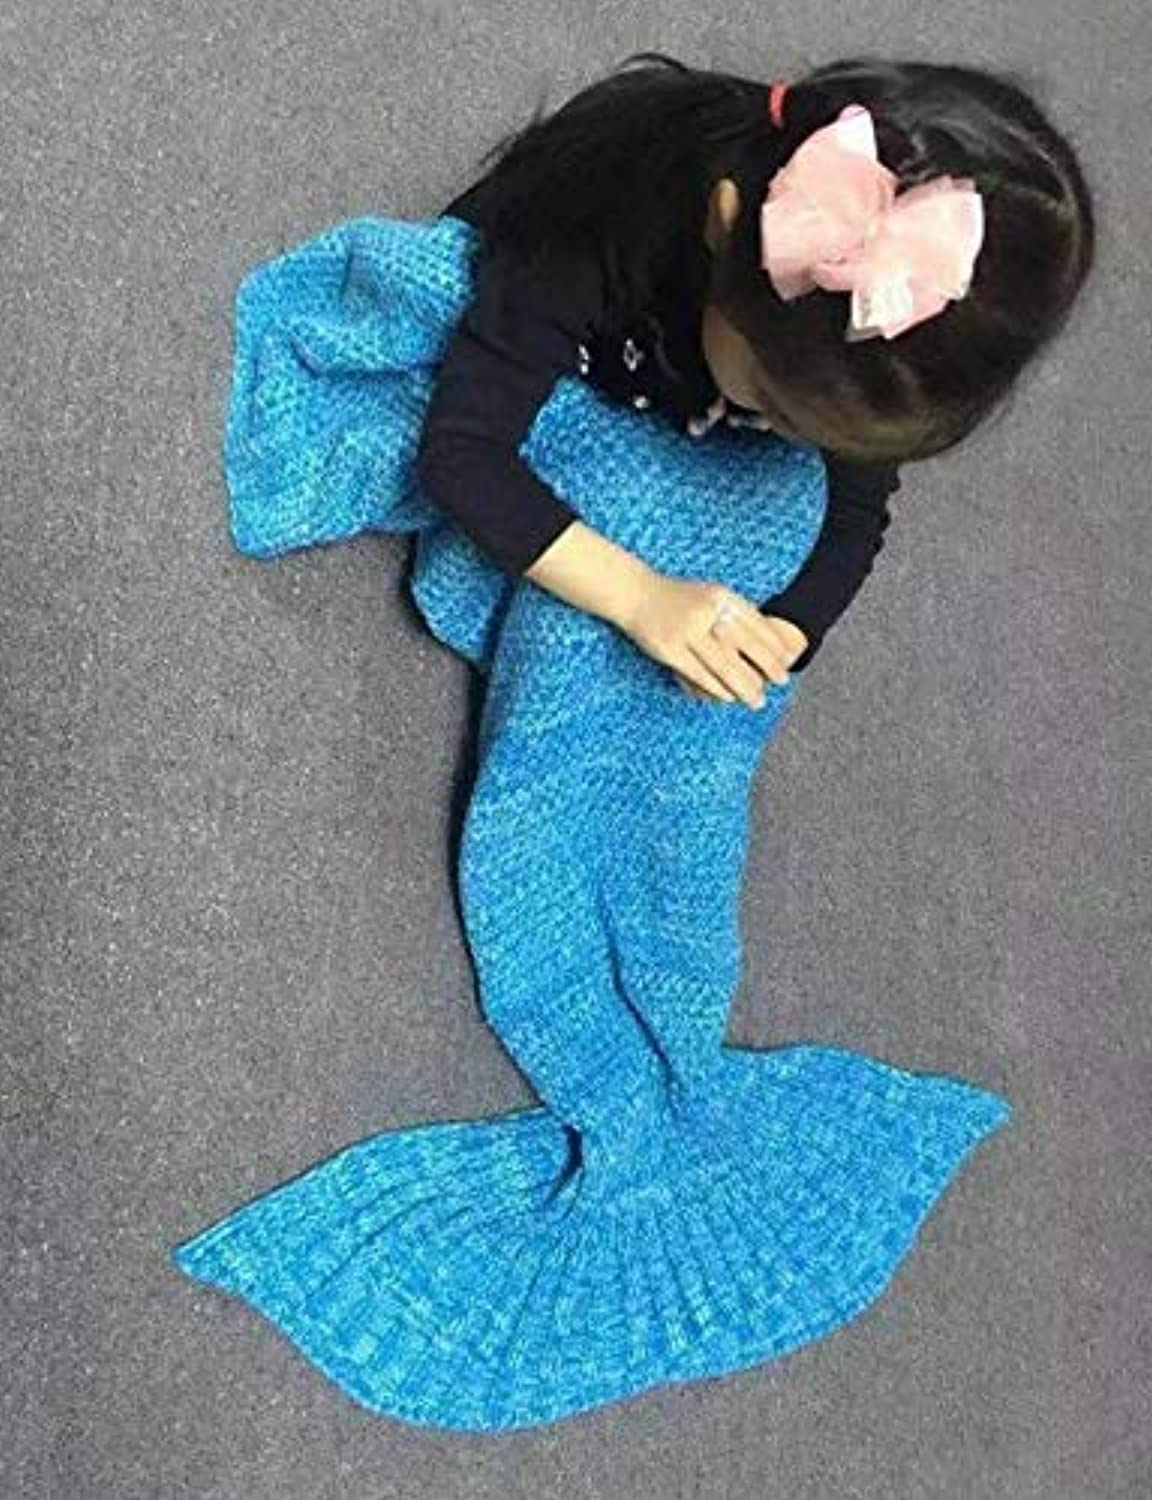 JINGB Home Mermaid air Conditioning Mermaid Tail, bluee, 195  95CM (76.8  37.4 inch) (color   The bluee, Size   195  95CM)